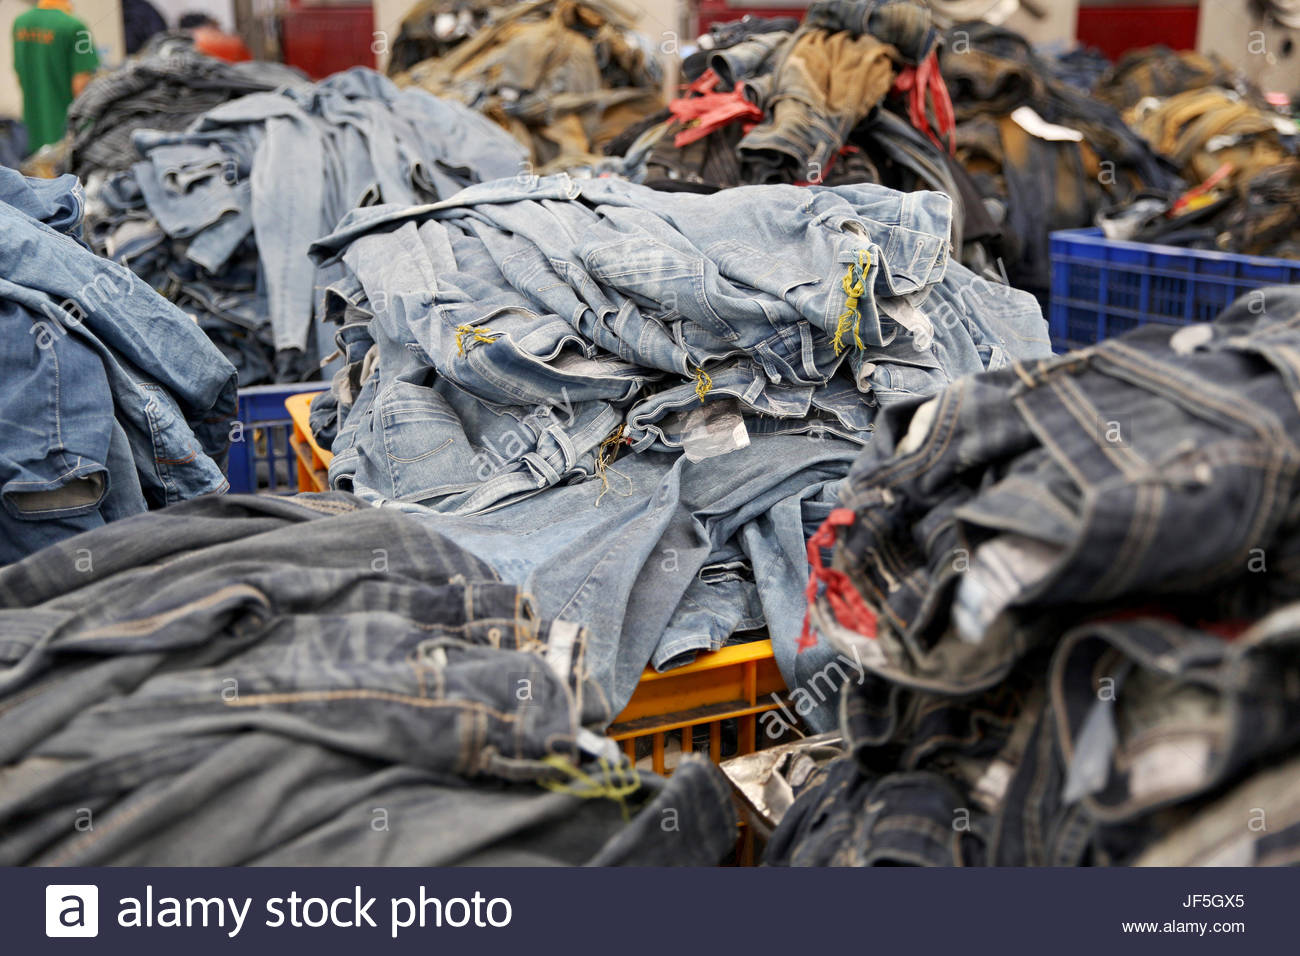 Piles of jeans at a denim factory. - Stock Image